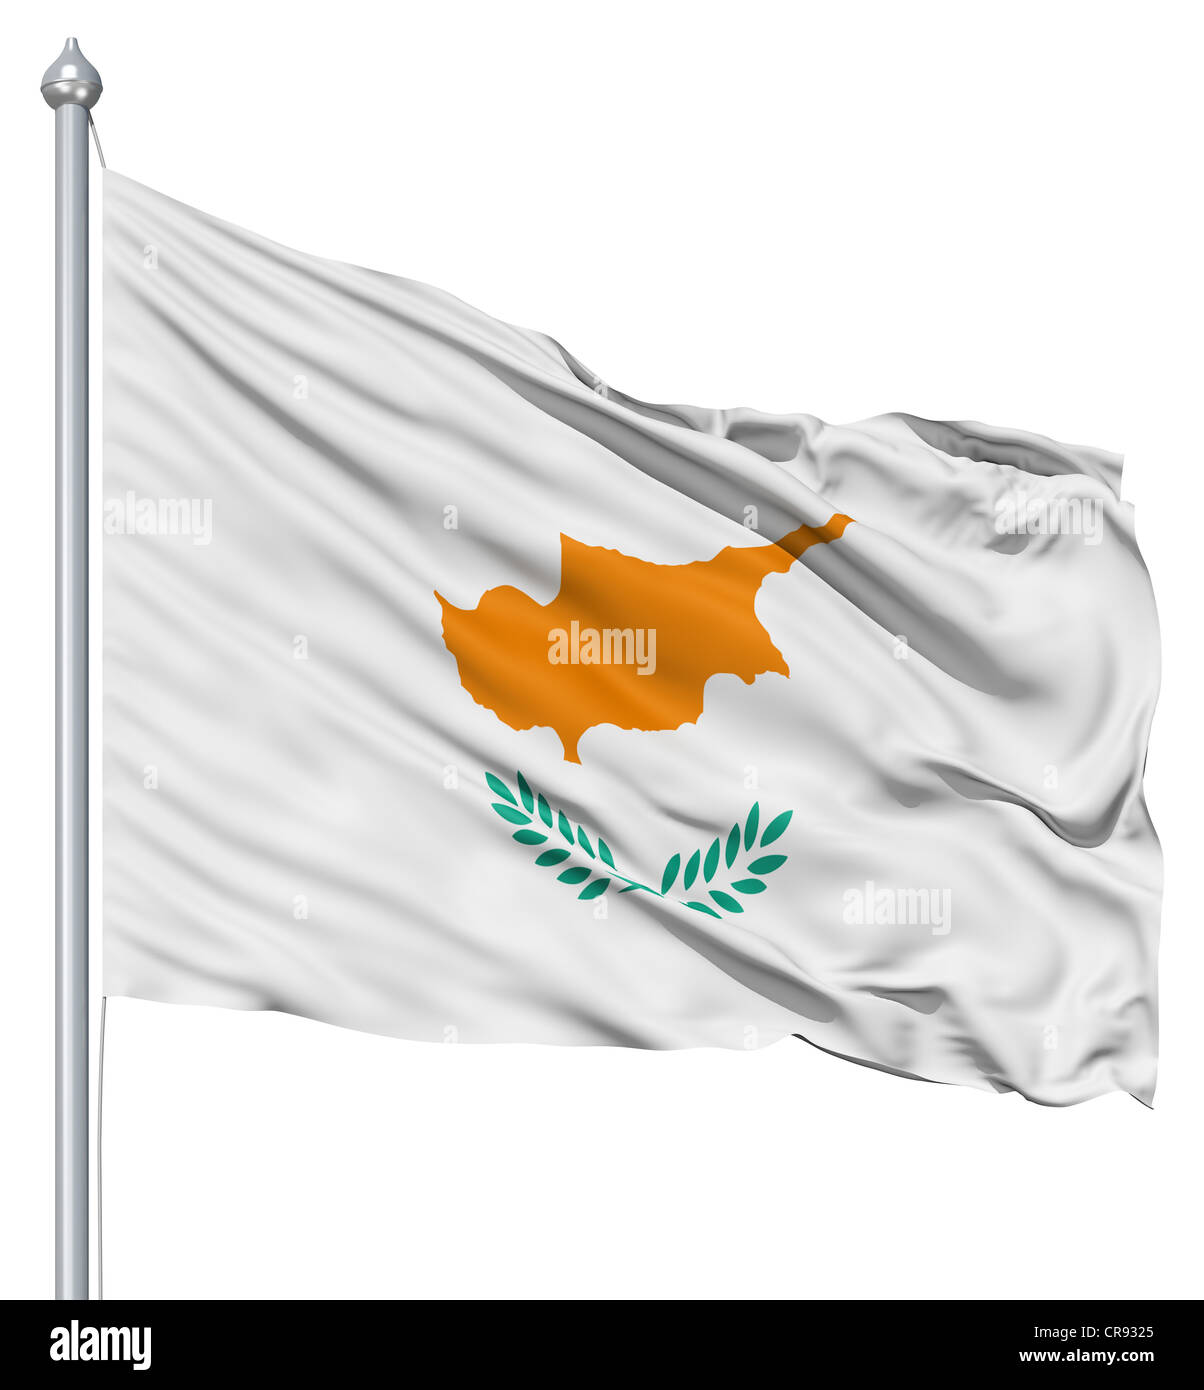 Flag of Cyprus with flagpole waving in the wind against white background - Stock Image